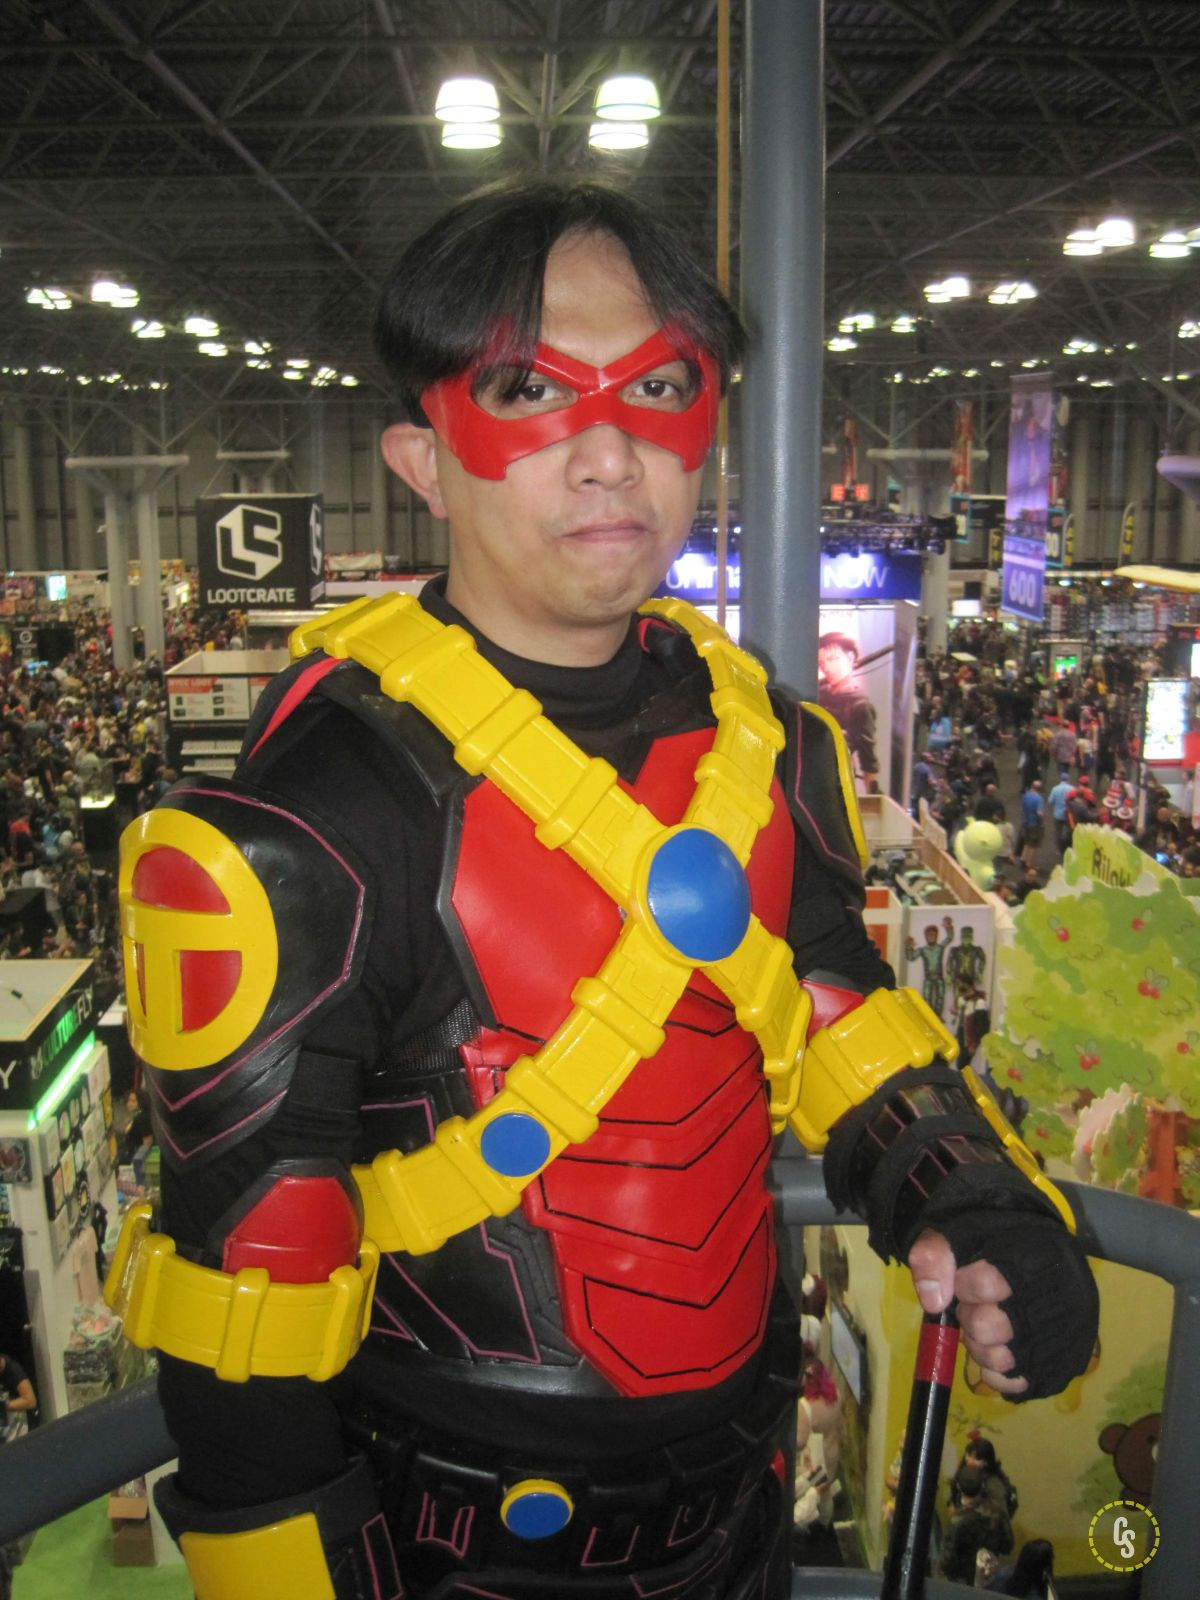 nycc183_057